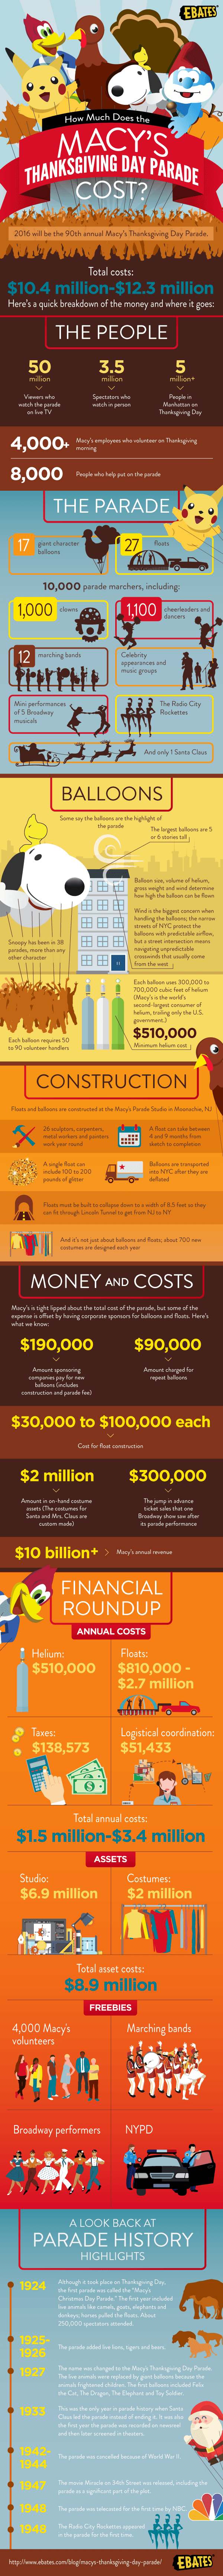 This Is How Much Macy's Thanksgiving Day Parade Costs - Infographic